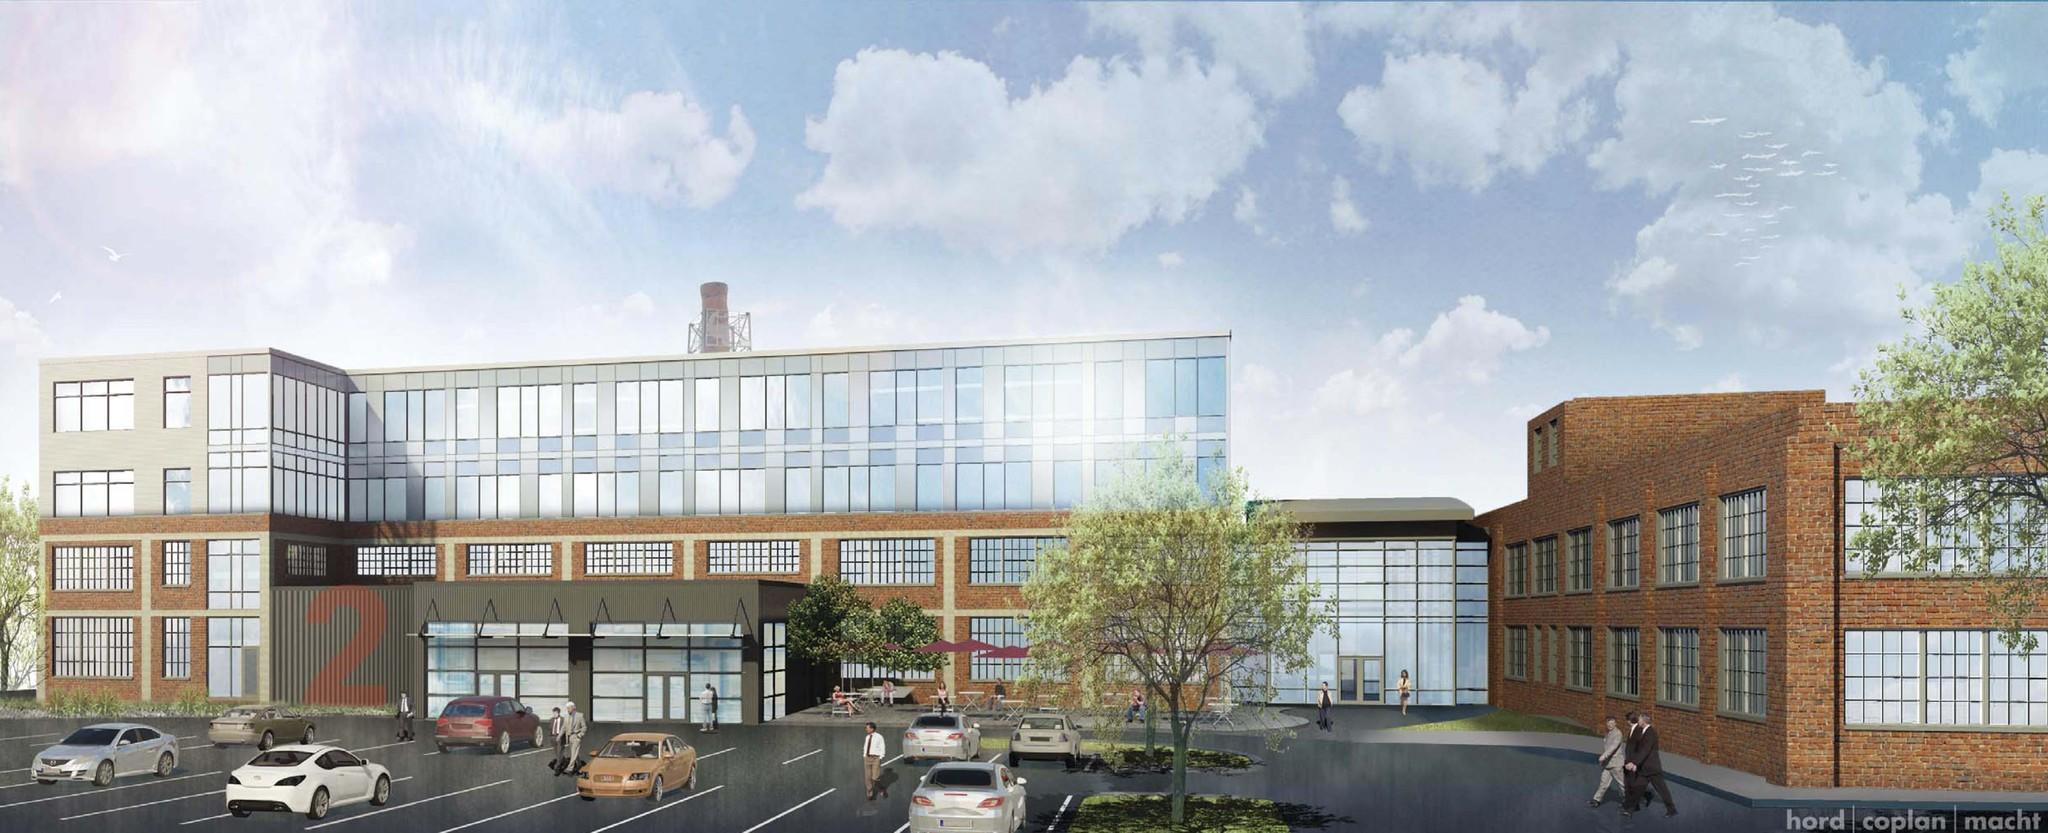 McHenry Row - Fort Ave. renderings of the new MAIF office space. 28 Walker | hord | coplan | macht